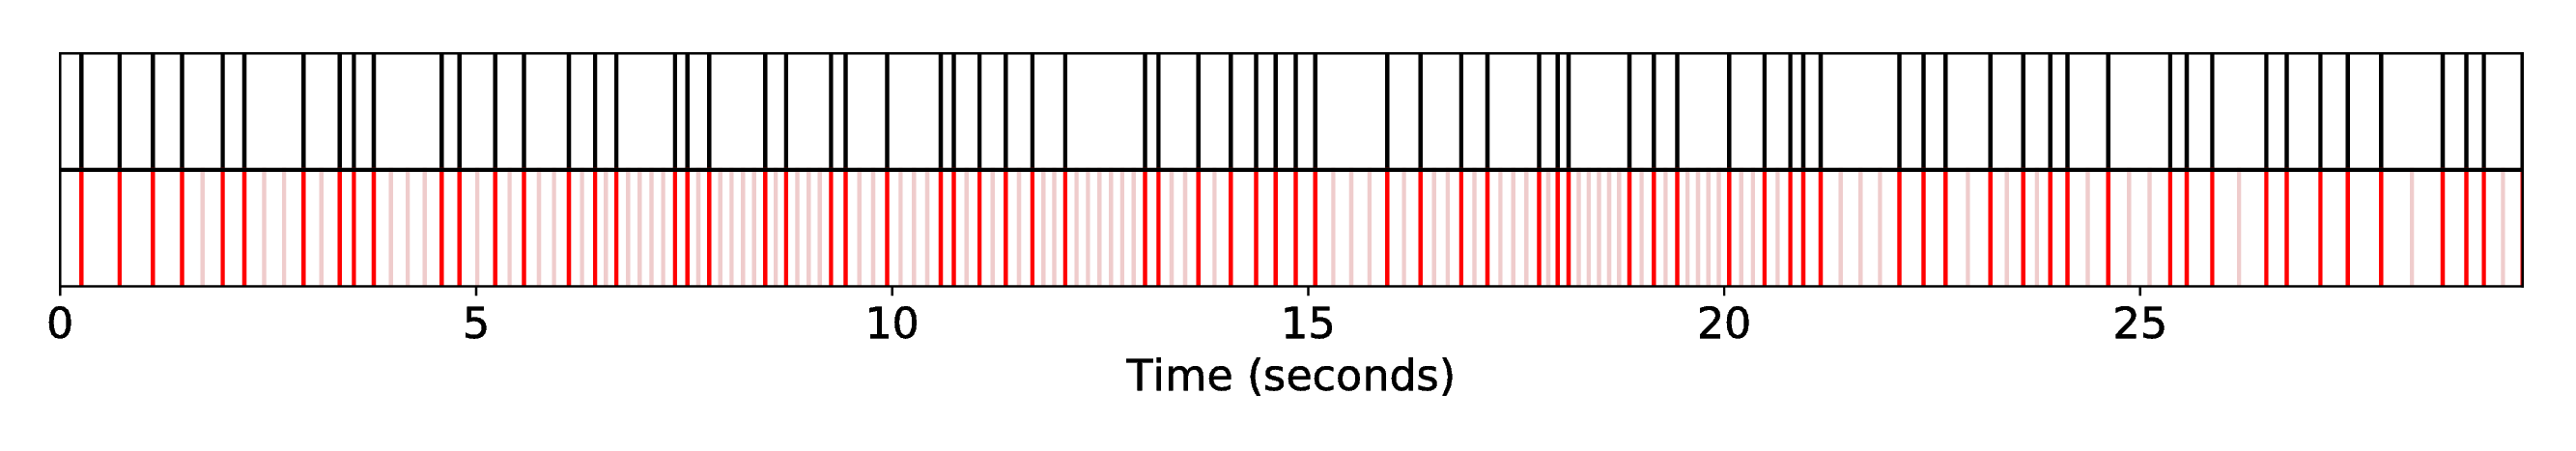 DP1_INT1_R-Syn-Ra__S-Broke__SequenceAlignment